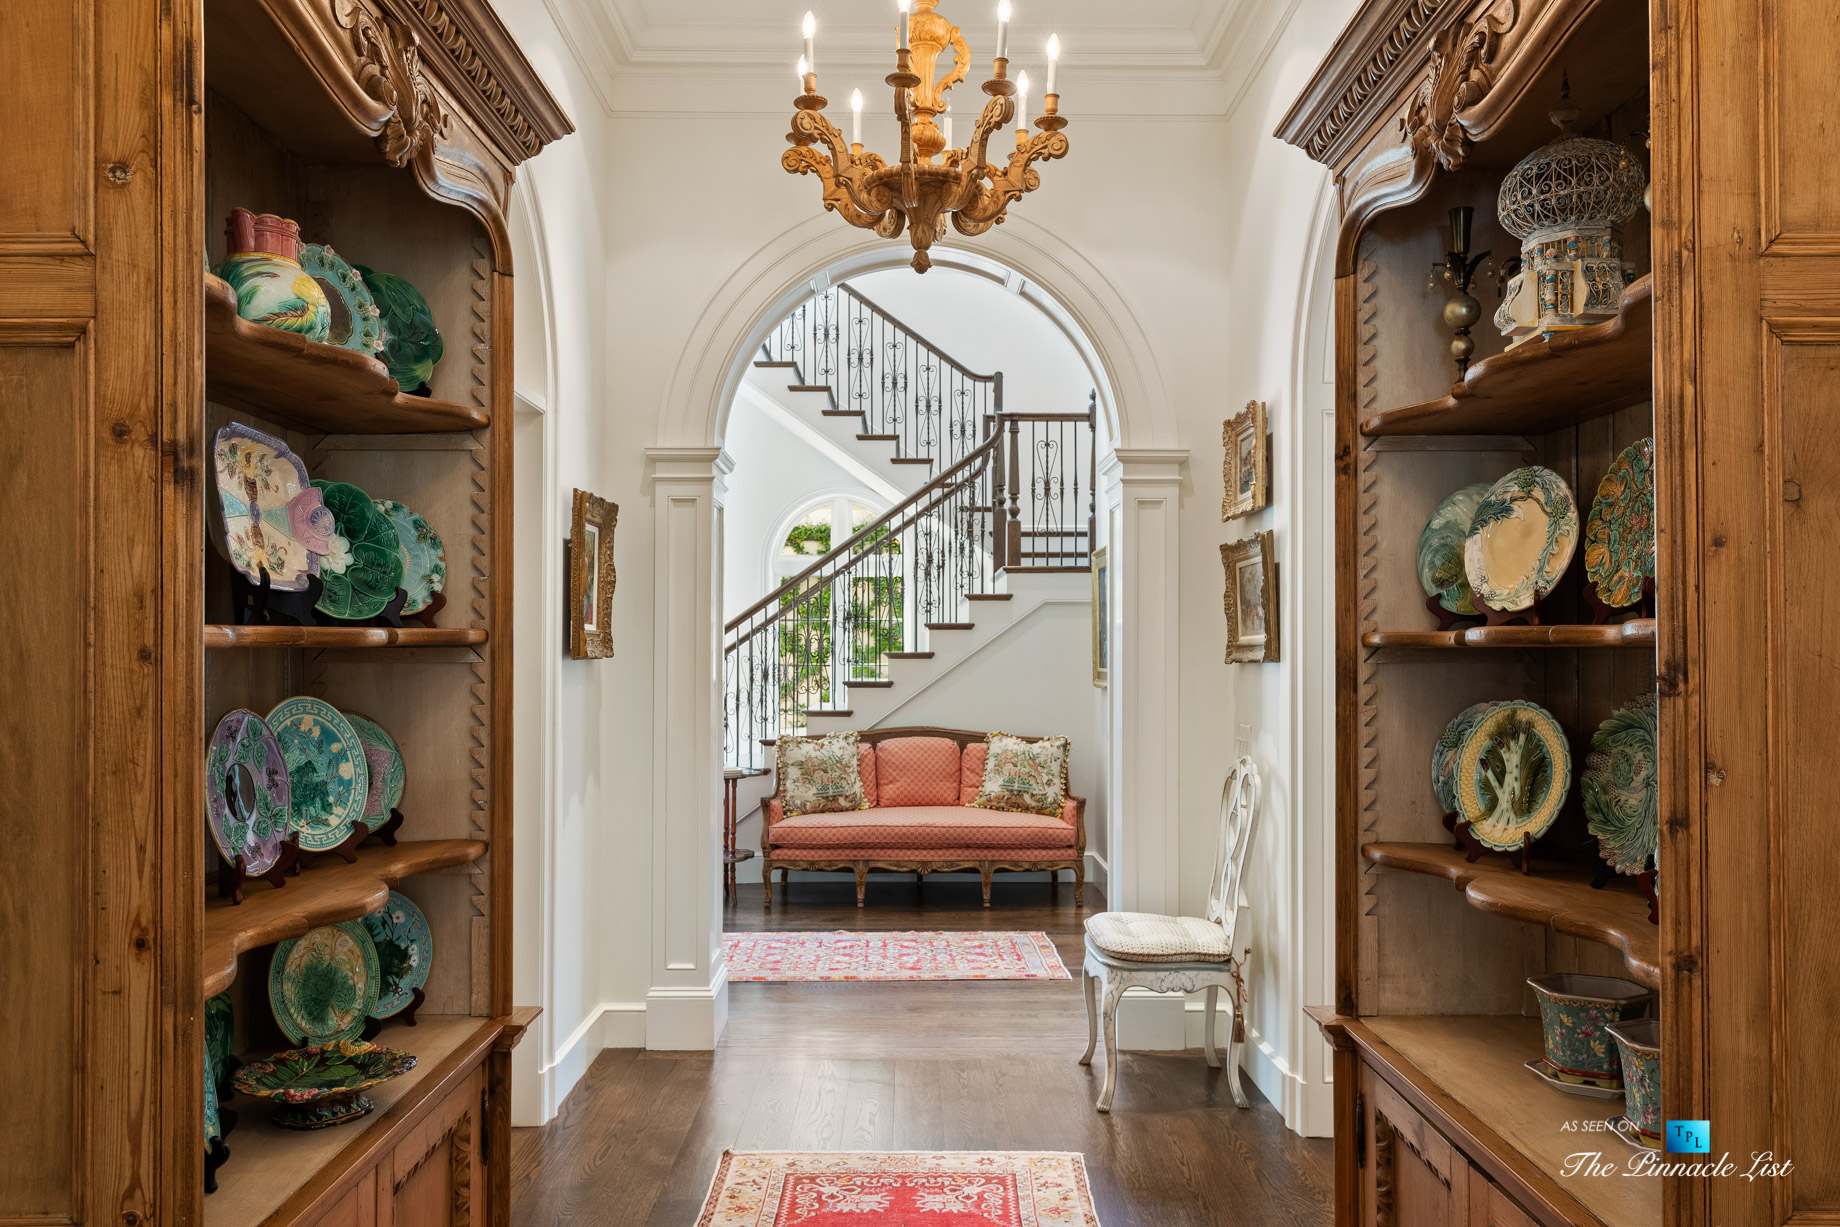 439 Blackland Rd NW, Atlanta, GA, USA – Hallway and Stairs – Luxury Real Estate – Tuxedo Park Mediterranean Mansion Home